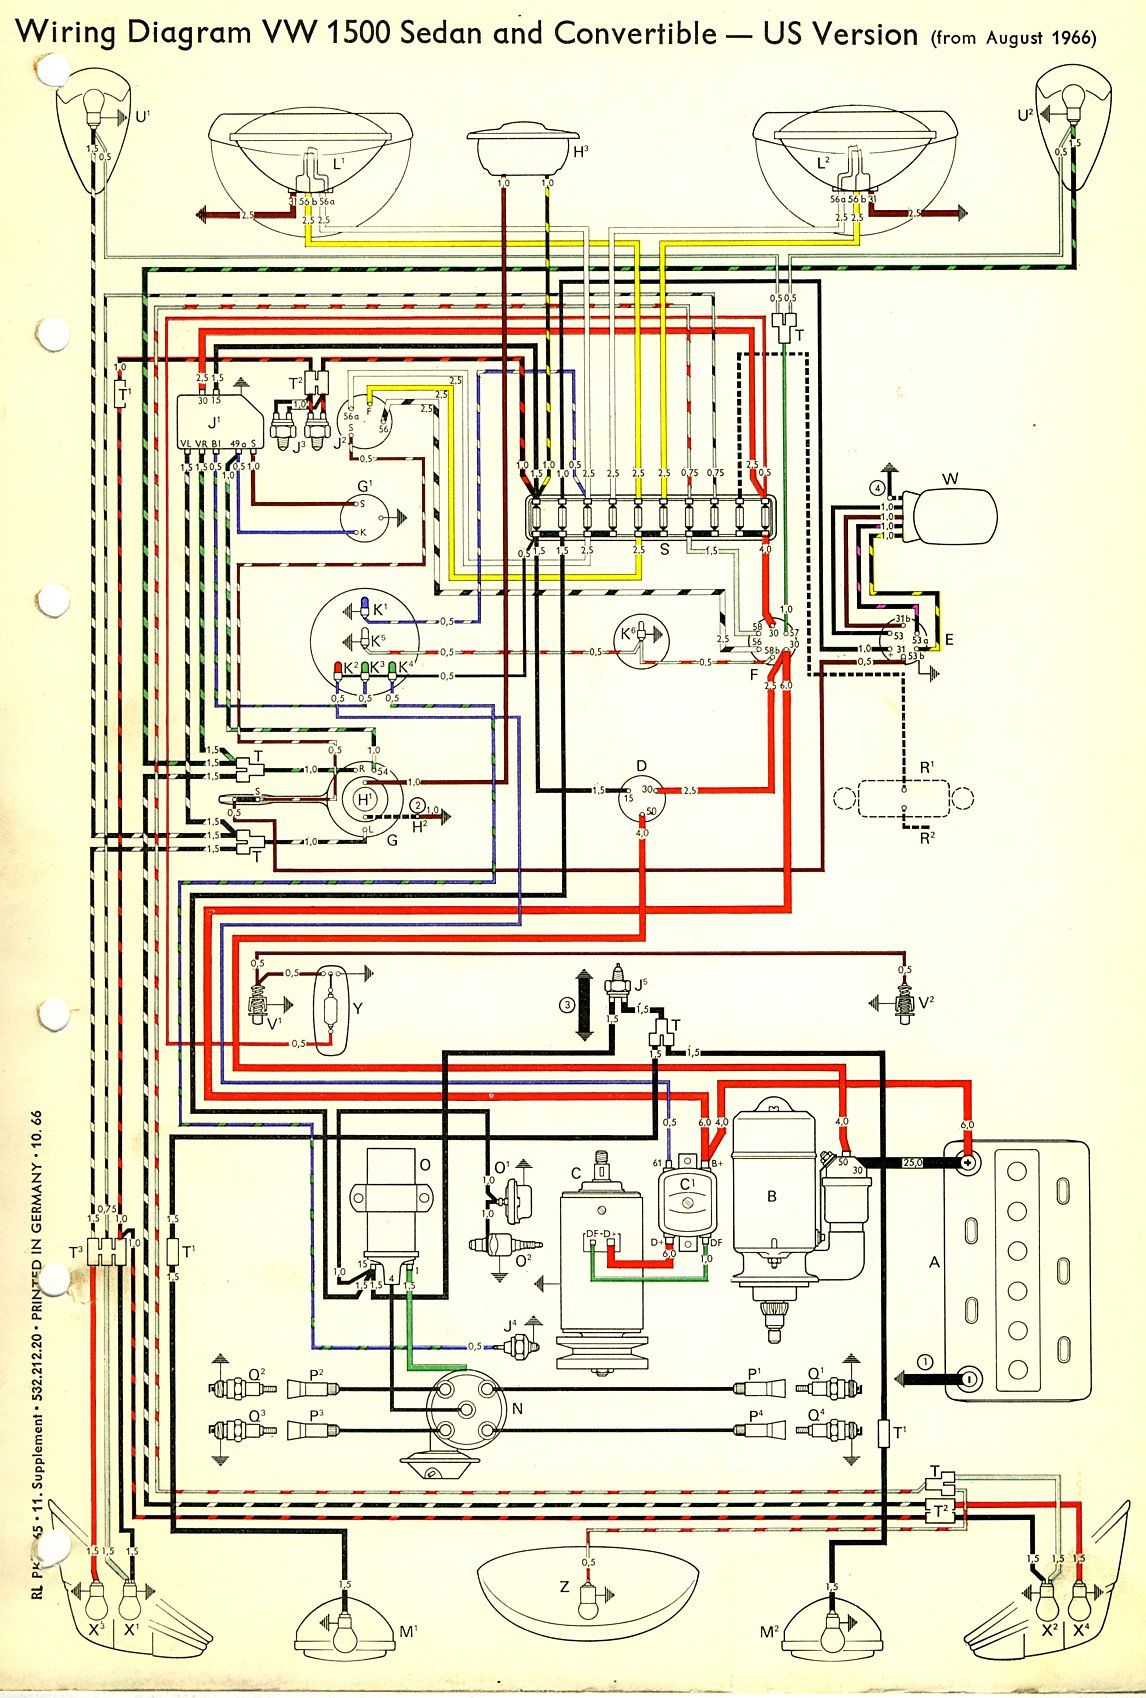 1adf990c0efb617c789fdd21338448b0 1967 beetle wiring diagram (usa) thegoldenbug com best 1967 vw vw wiring diagrams at gsmportal.co